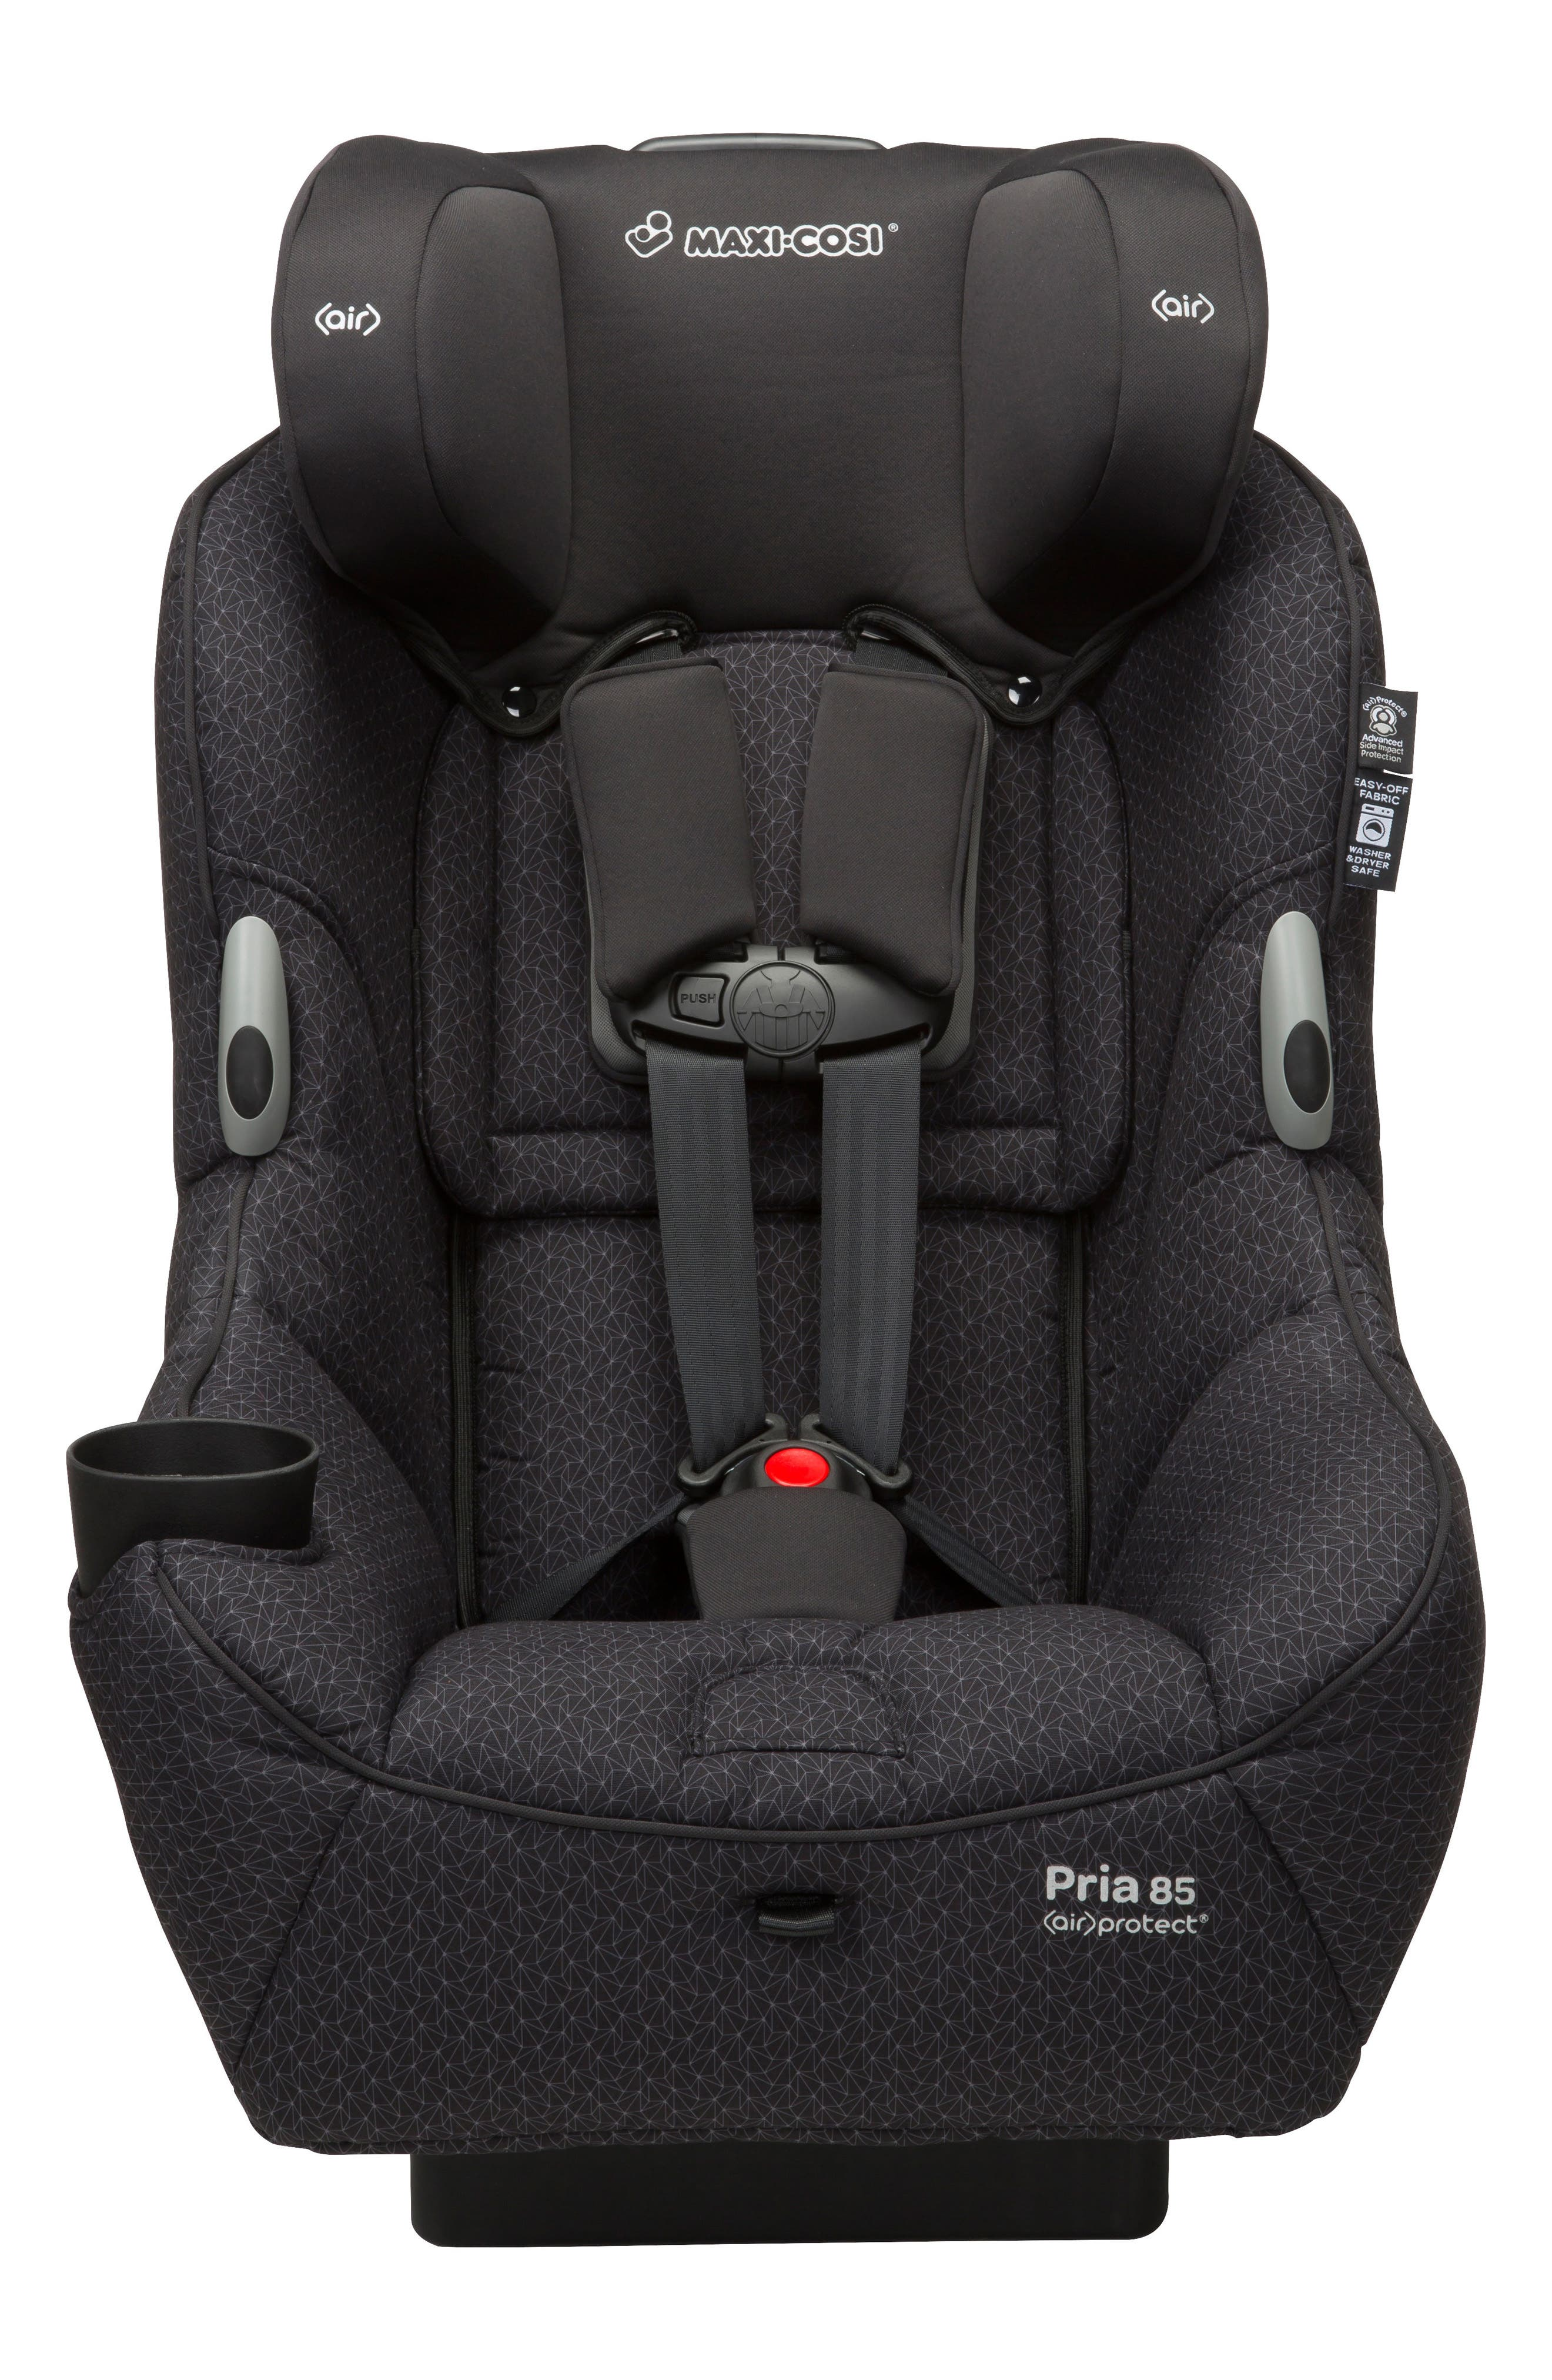 Pria<sup>™</sup> 85 Black Crystal Special Edition Car Seat,                             Alternate thumbnail 6, color,